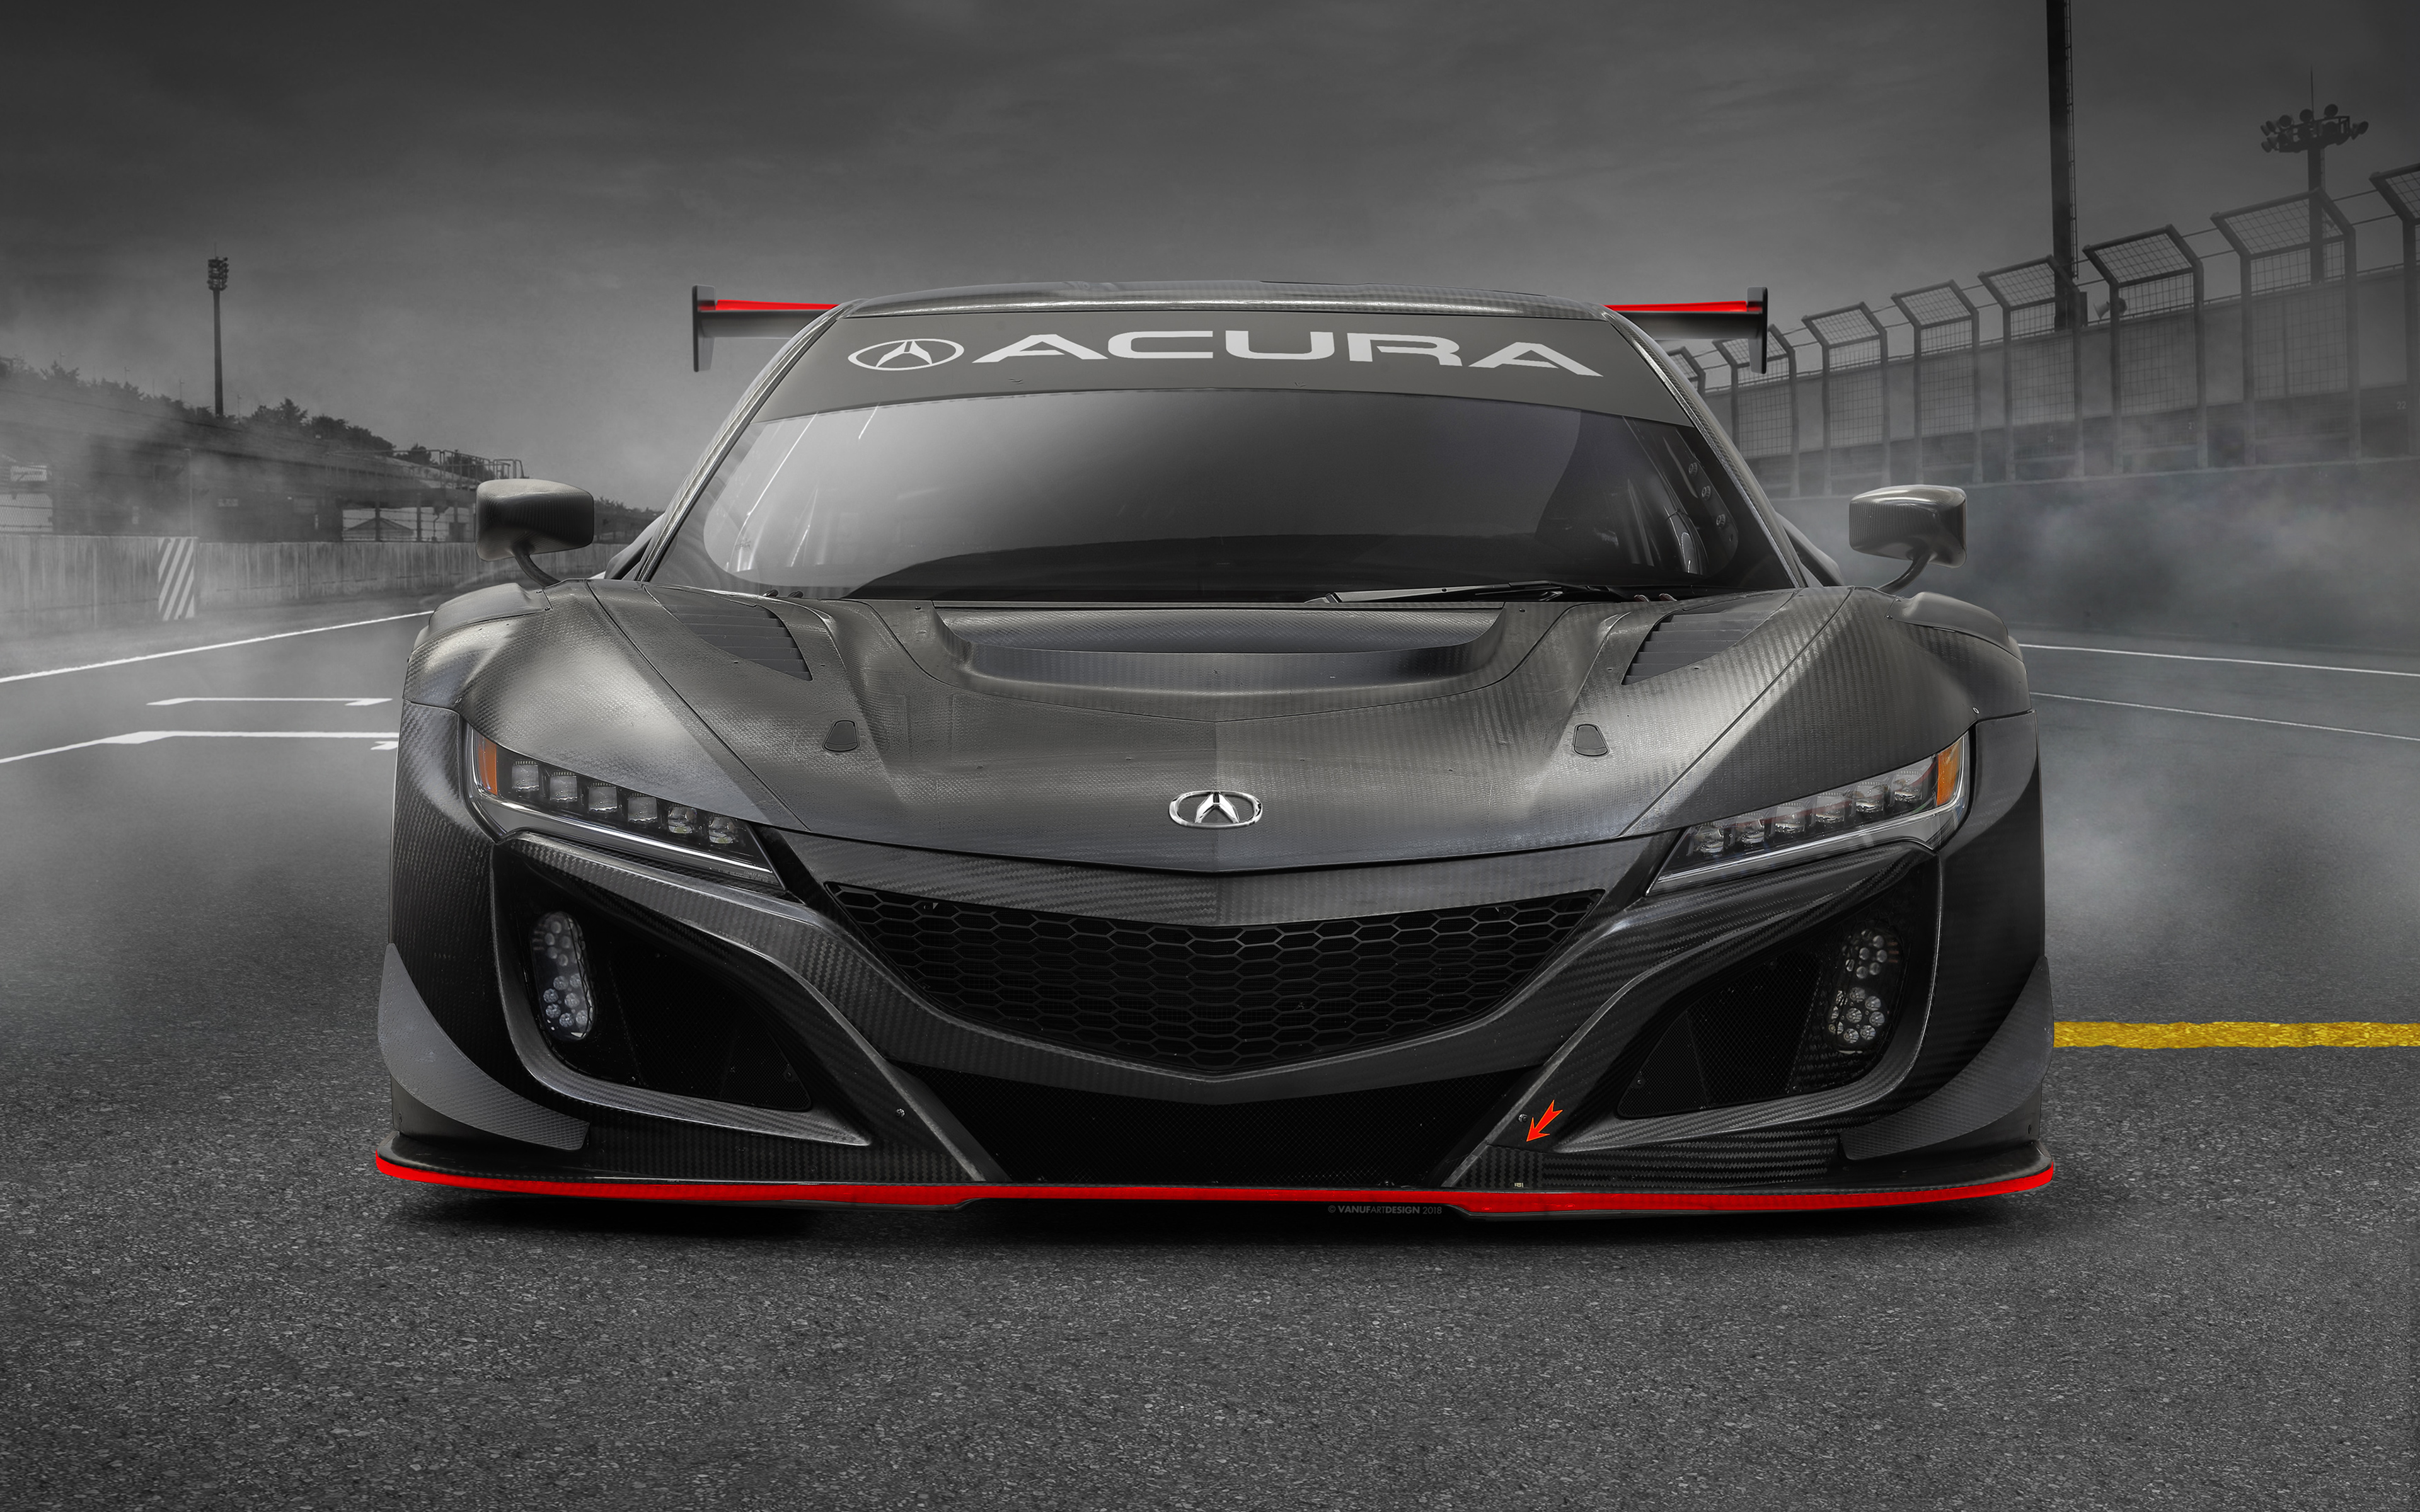 3840x2400 acura nsx gt3 evo 2019 front 4k hd 4k wallpapers  images  backgrounds  photos and pictures